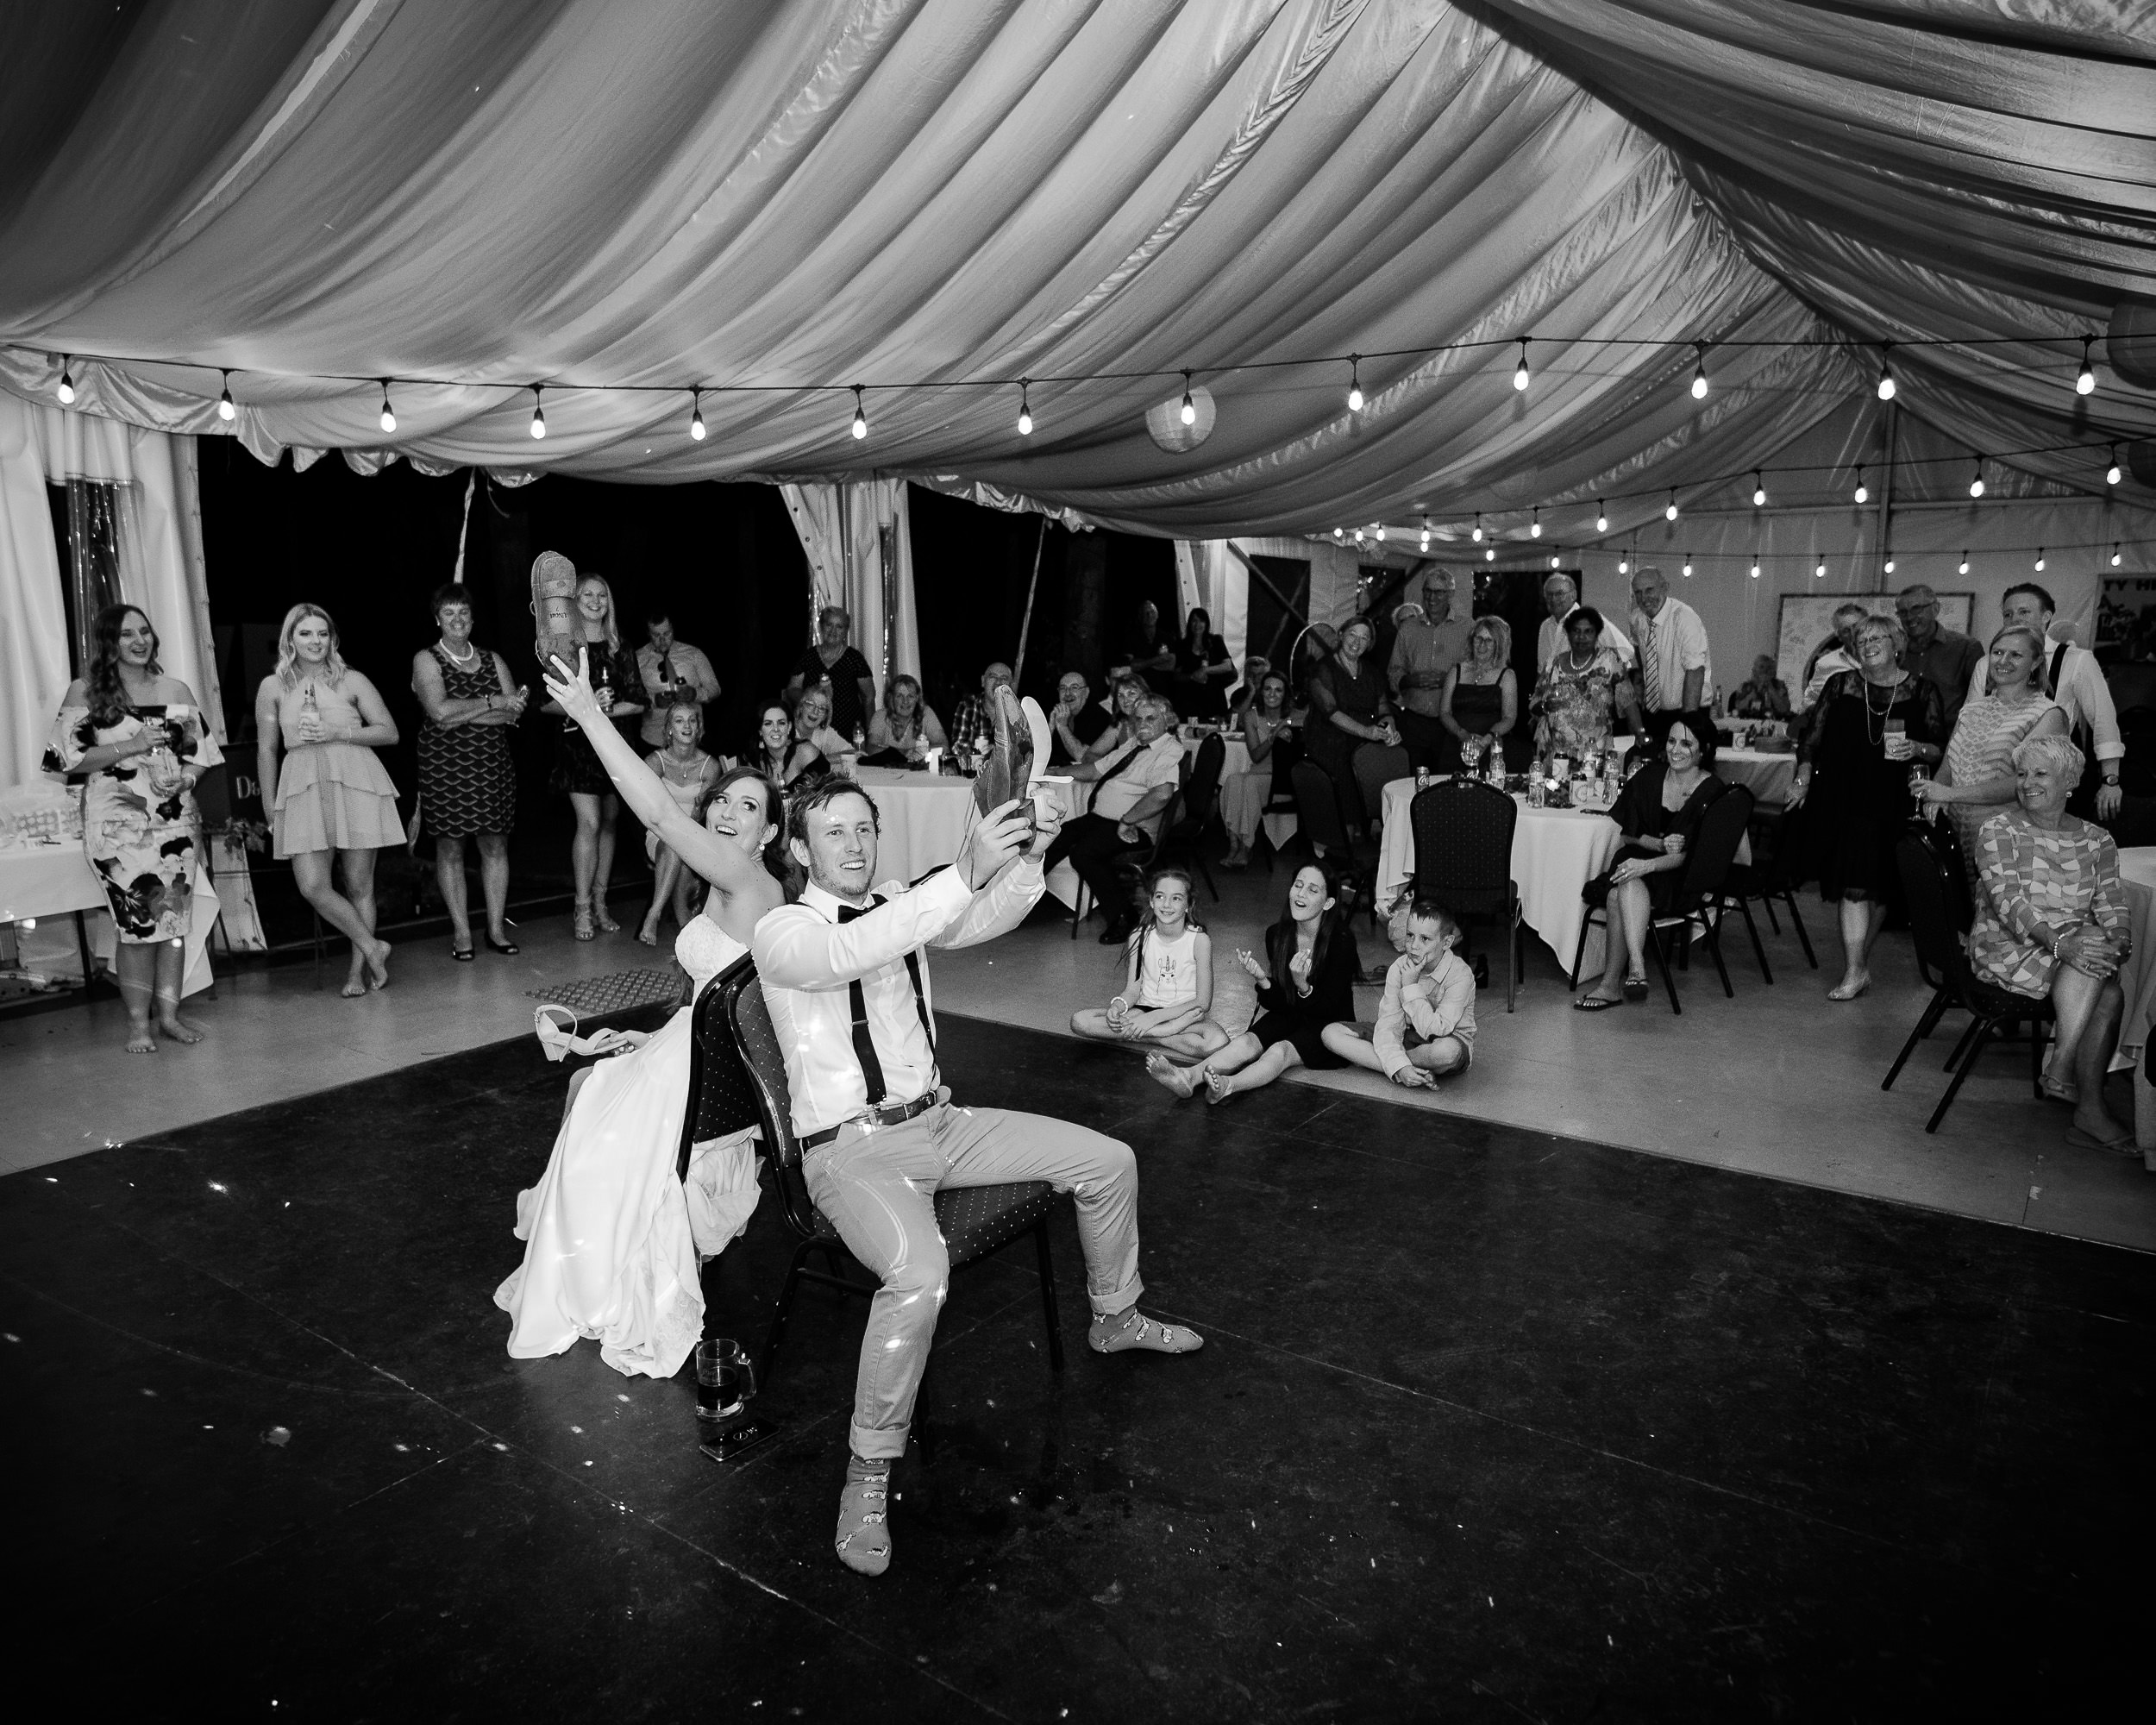 the 'Shoe Game' has been a great hit at Echuca weddings